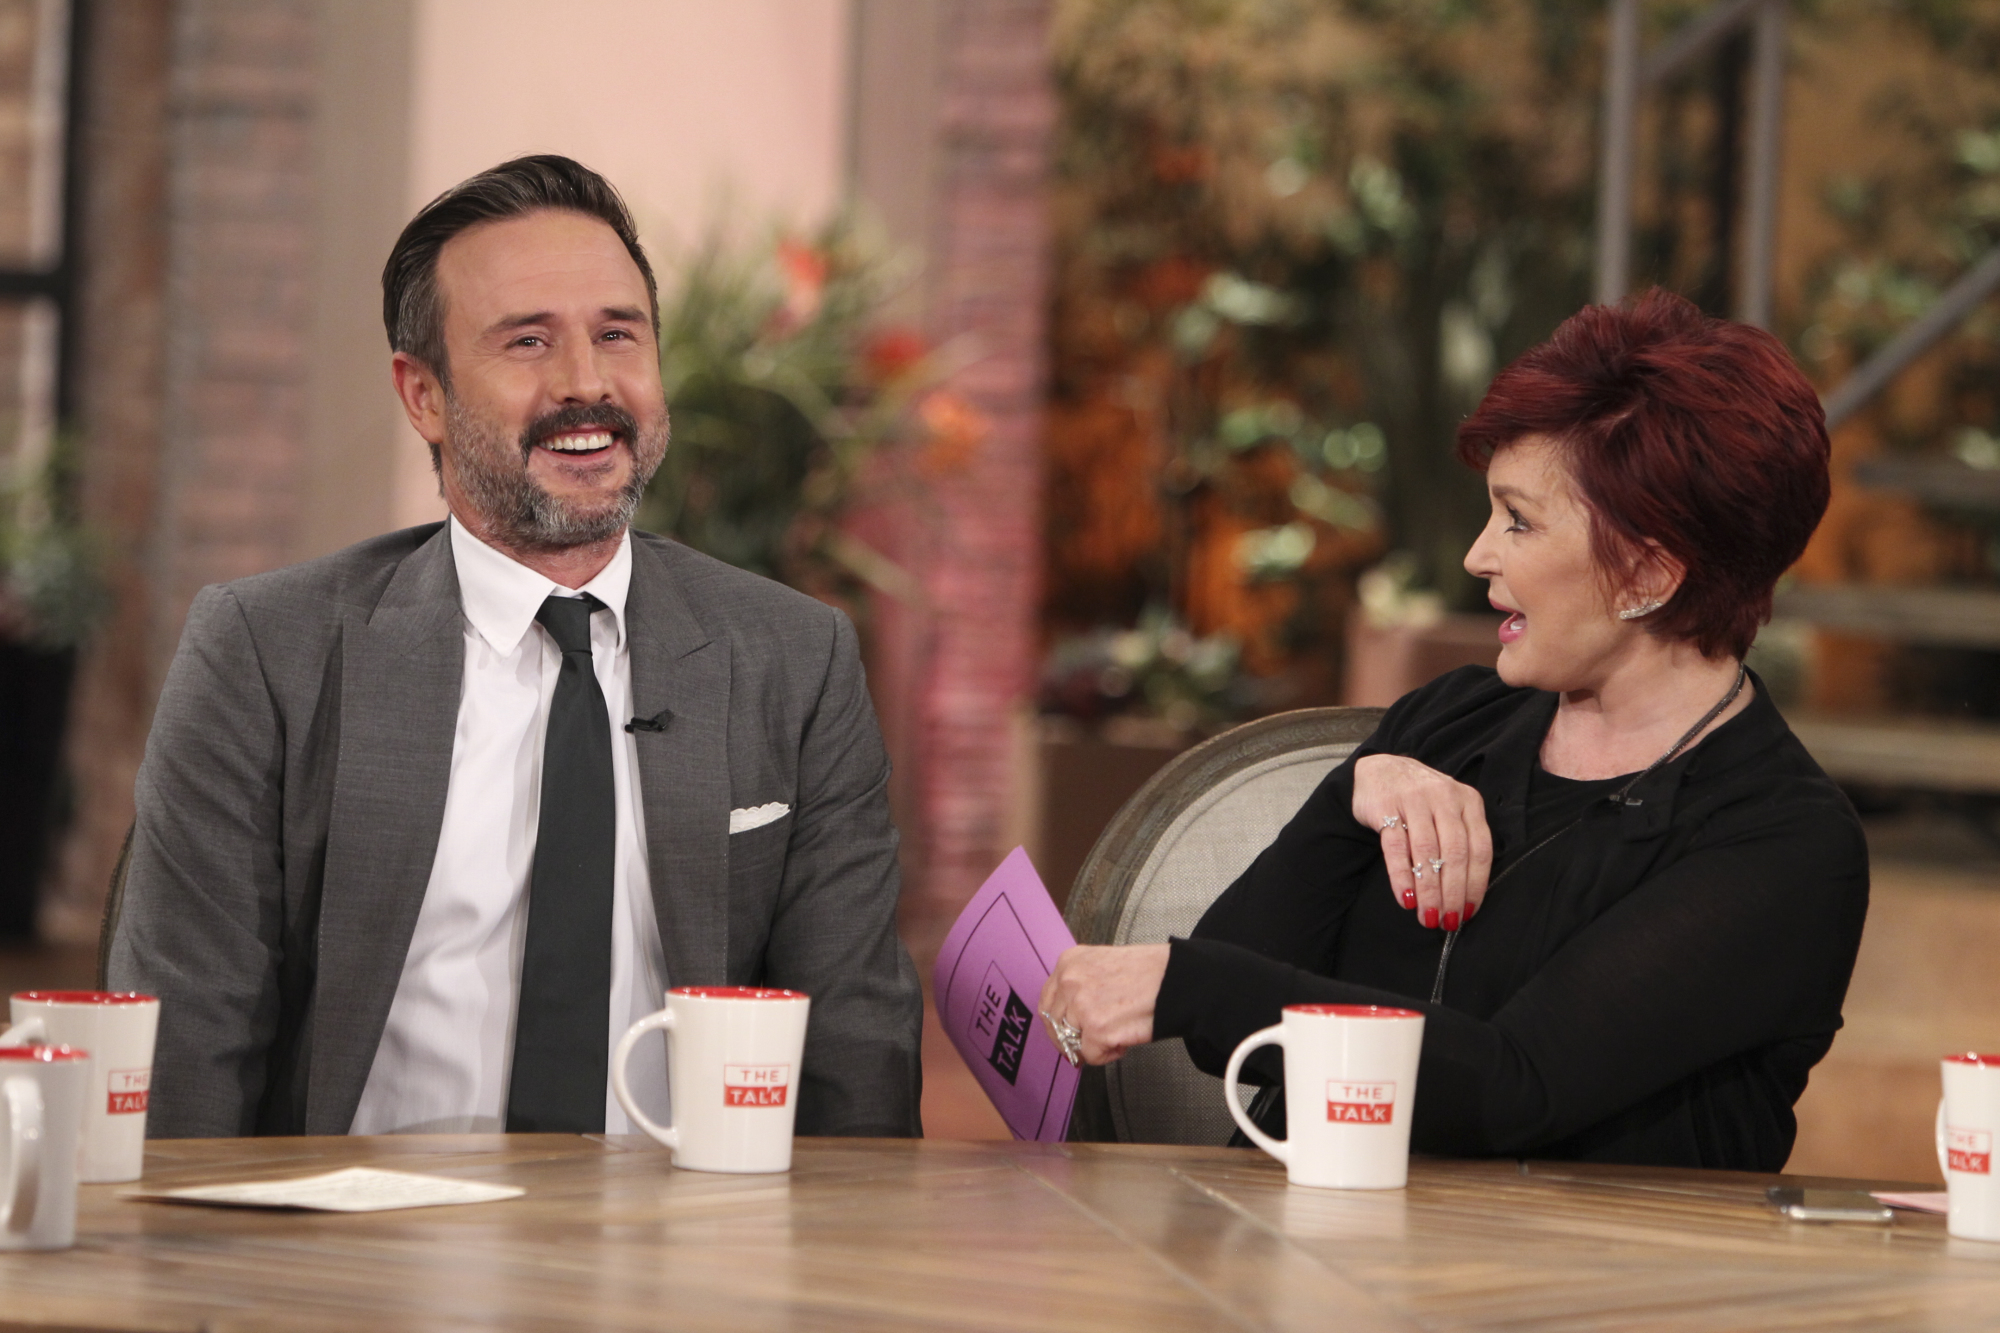 6. David Arquette sharing his proposal story.